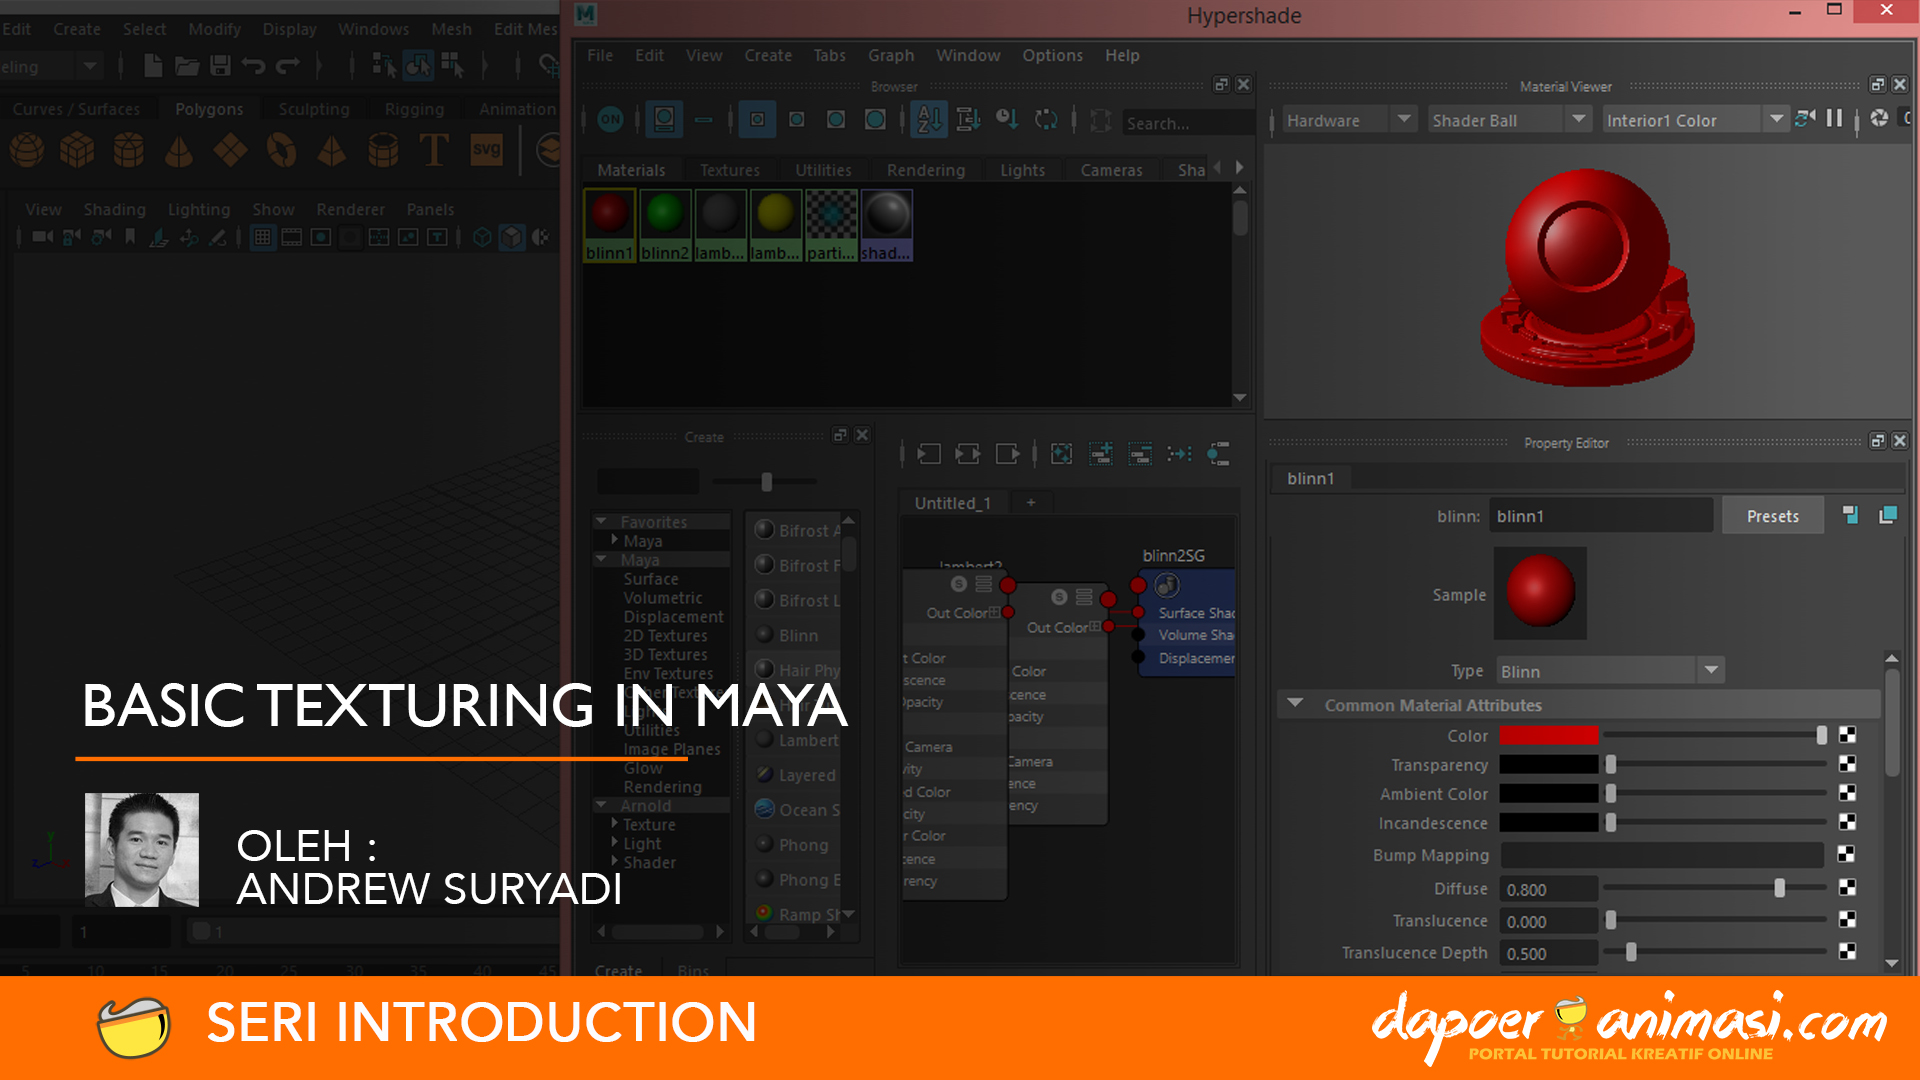 Dapoer Animasi : Basic Texturing in Maya